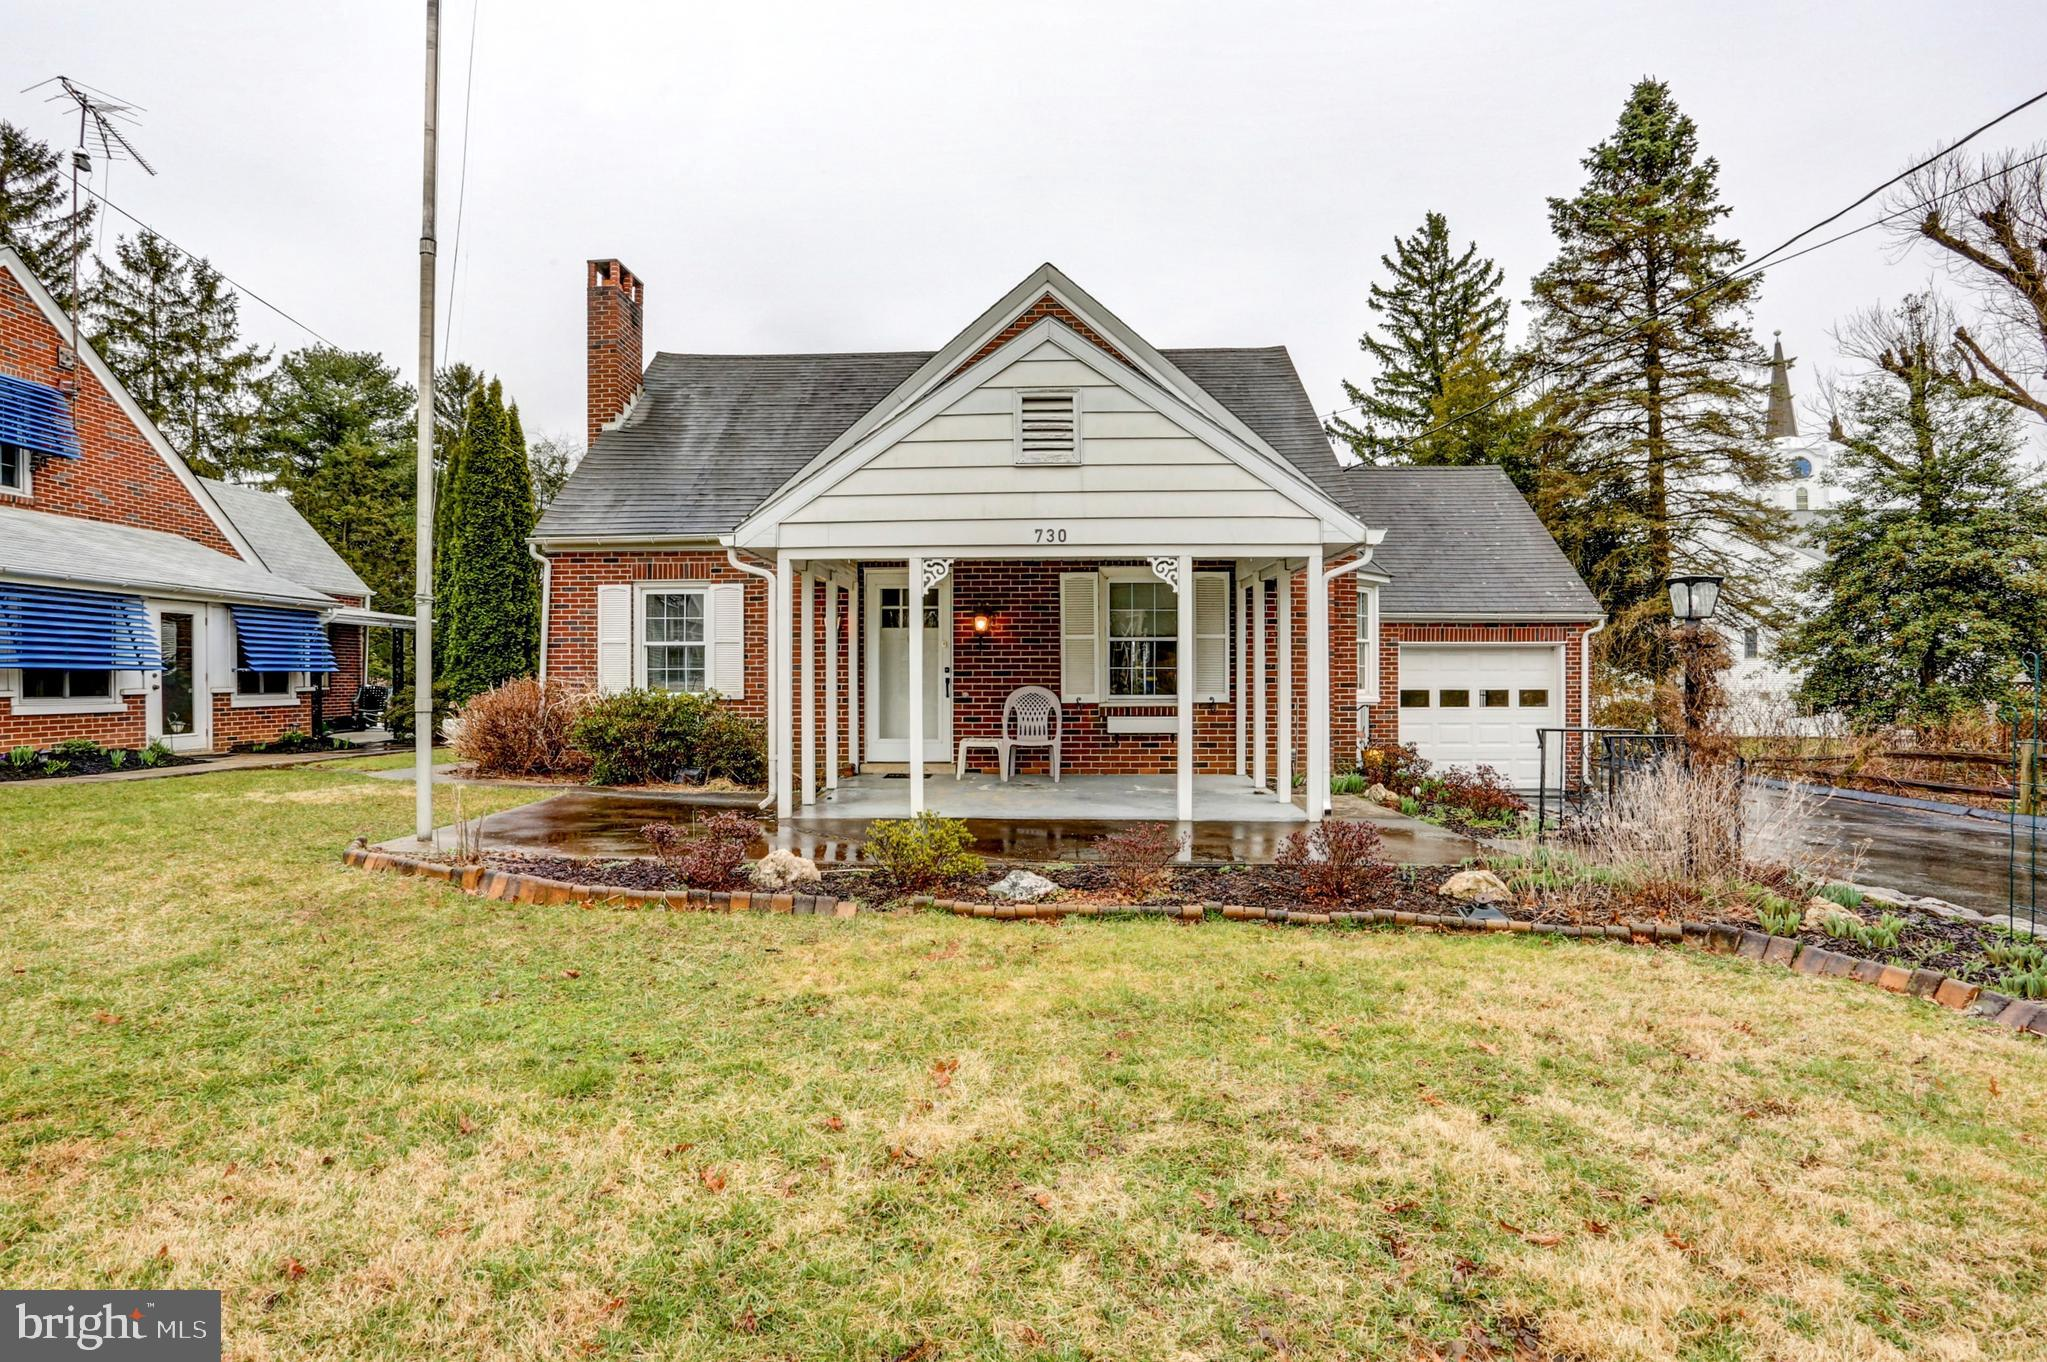 Residential for sale in HONEY BROOK, Pennsylvania, PACT460654